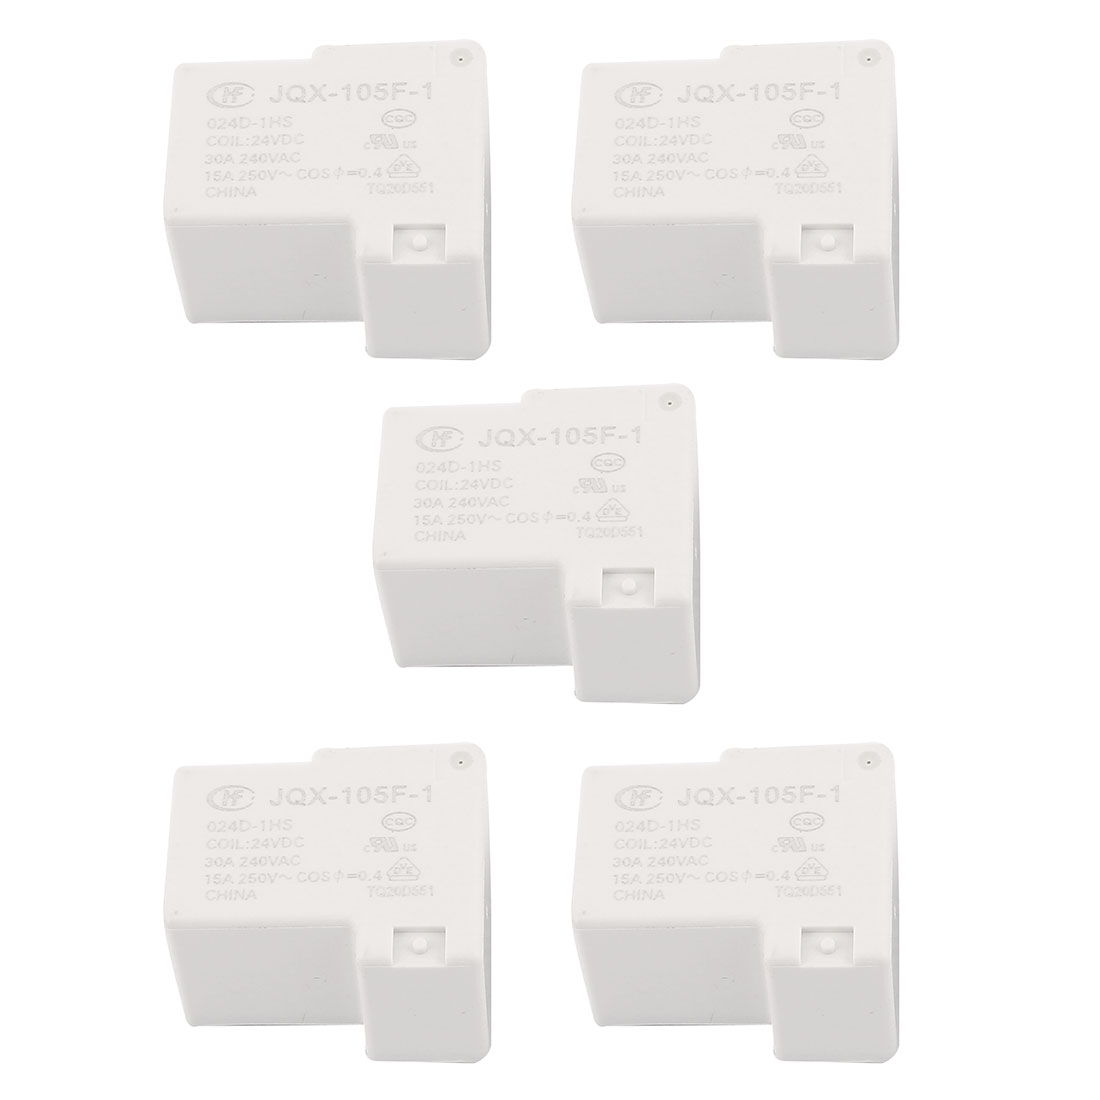 5 Pcs 24VDC 250VAC 15A 4 Terminal SPST NO JQX-105F-1/024D-1HS Power Relay